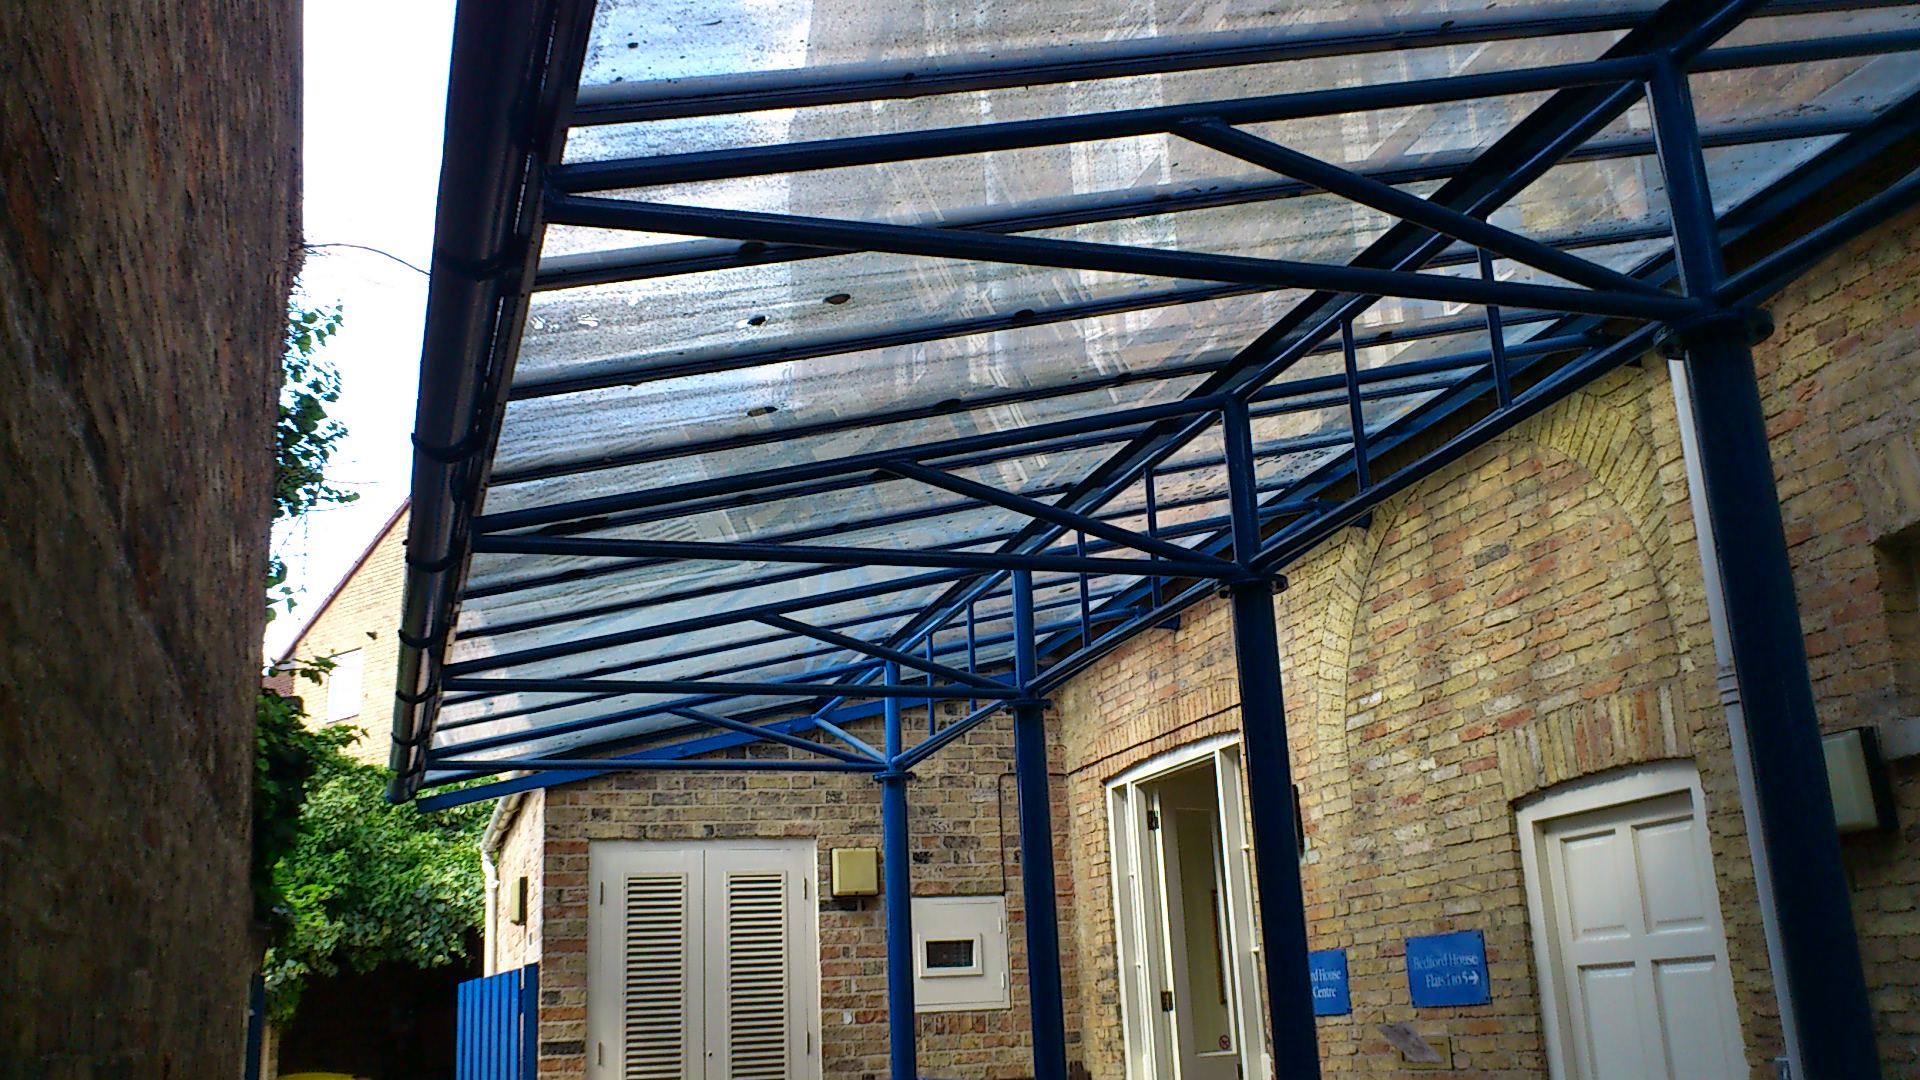 Glass entrance canopy cleaning - (Before).